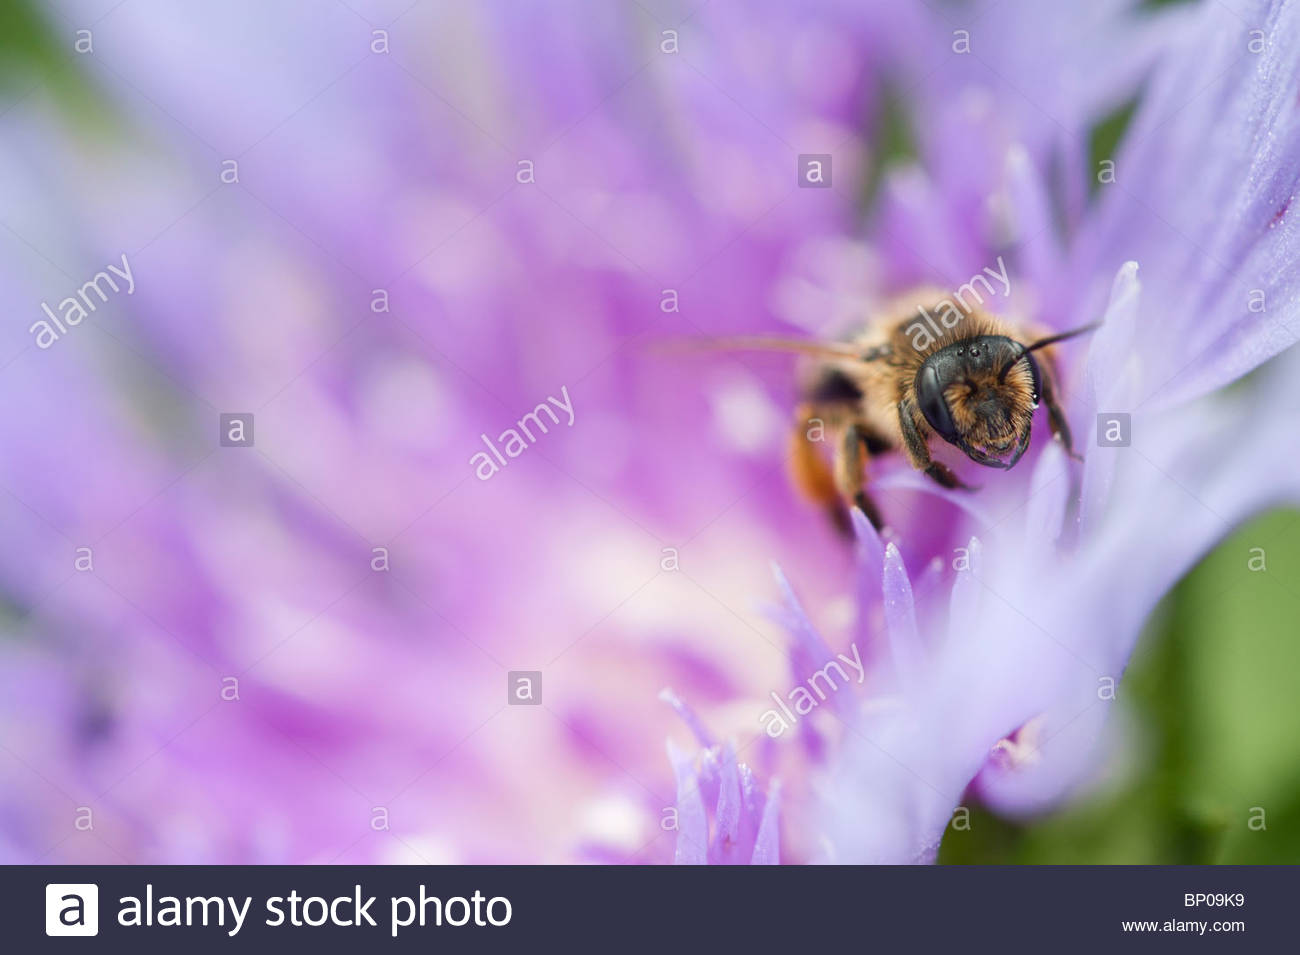 Honeybee on a flower close up - Stock Image